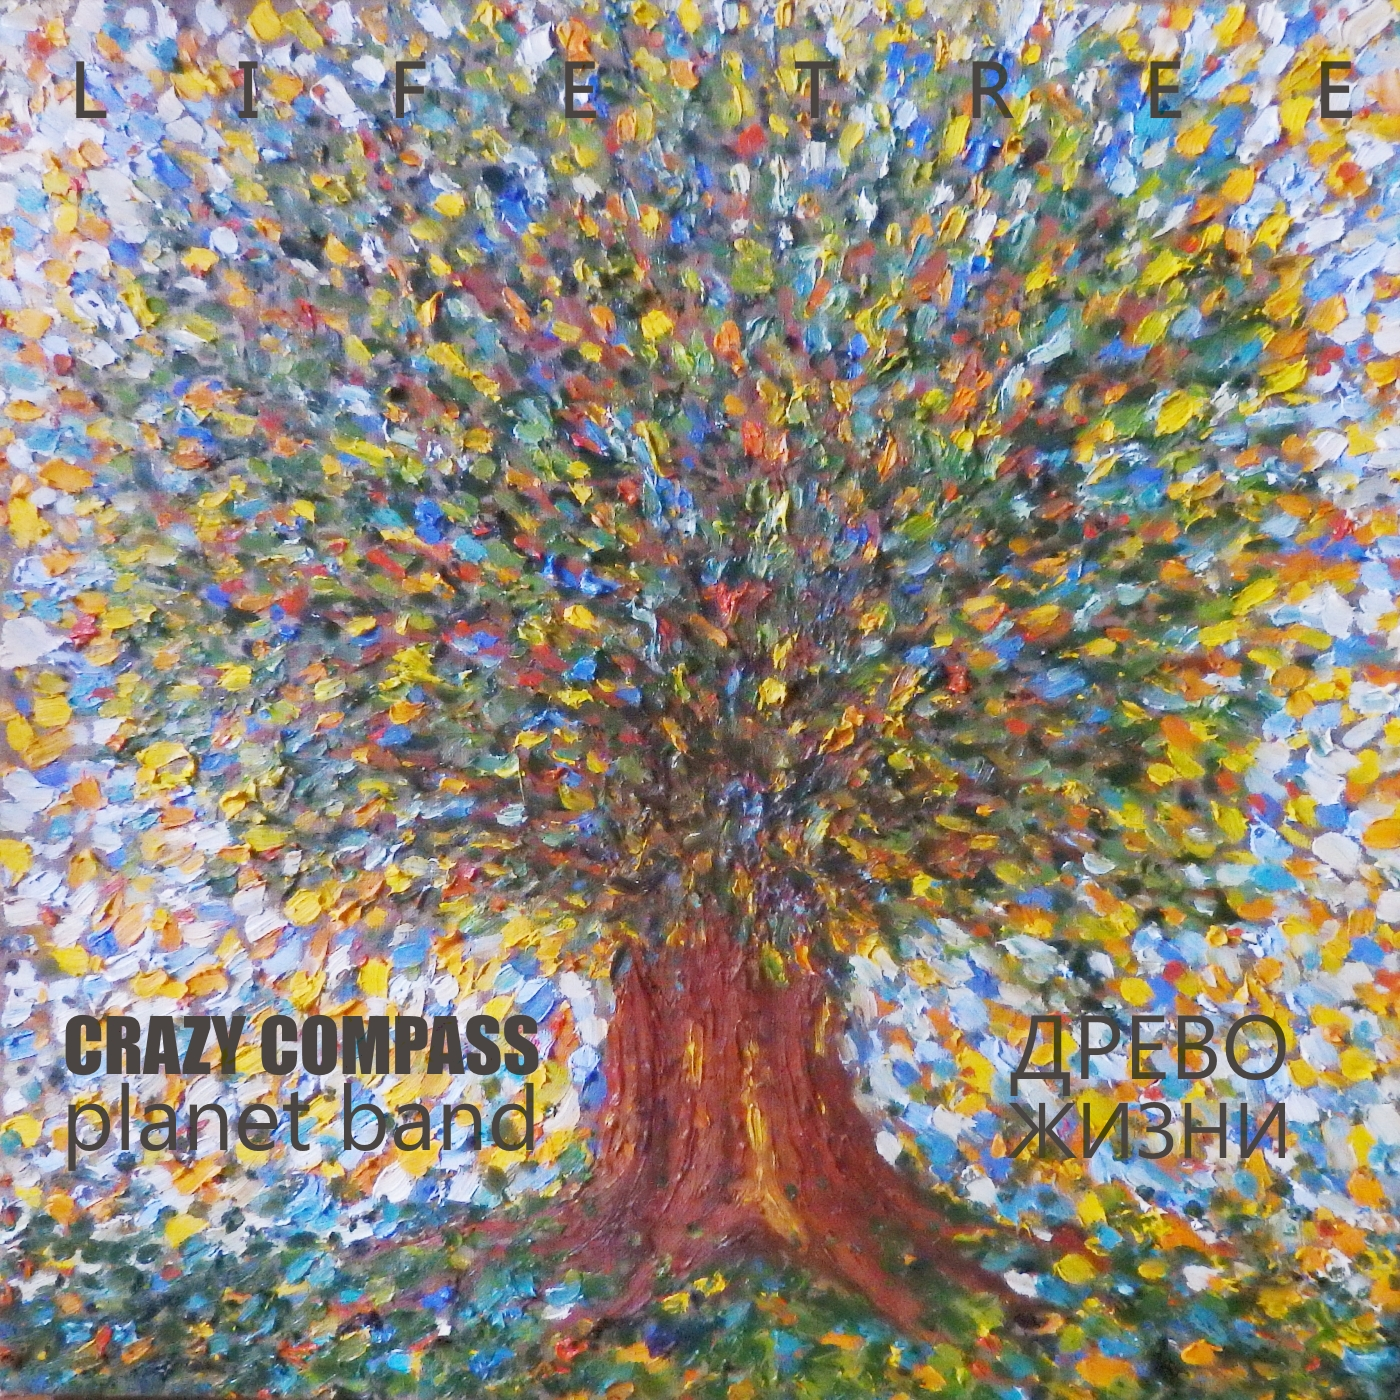 CRAZY COMPASS planet band - Древо Жизни / Life Tree